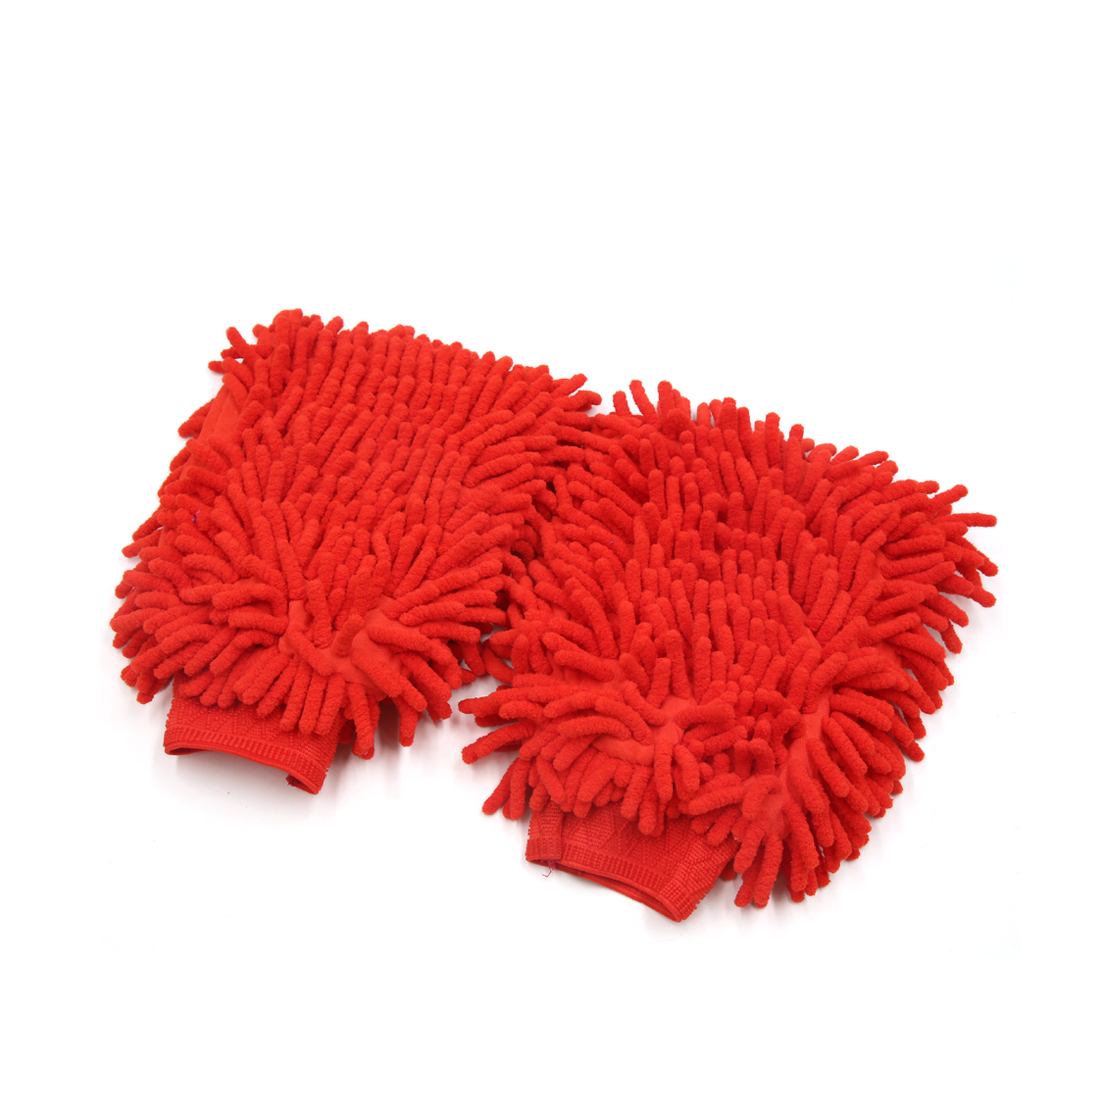 2Pcs Red Double Side Chenille Wash Mitten Cleaning Glove for Car Vehilce Home